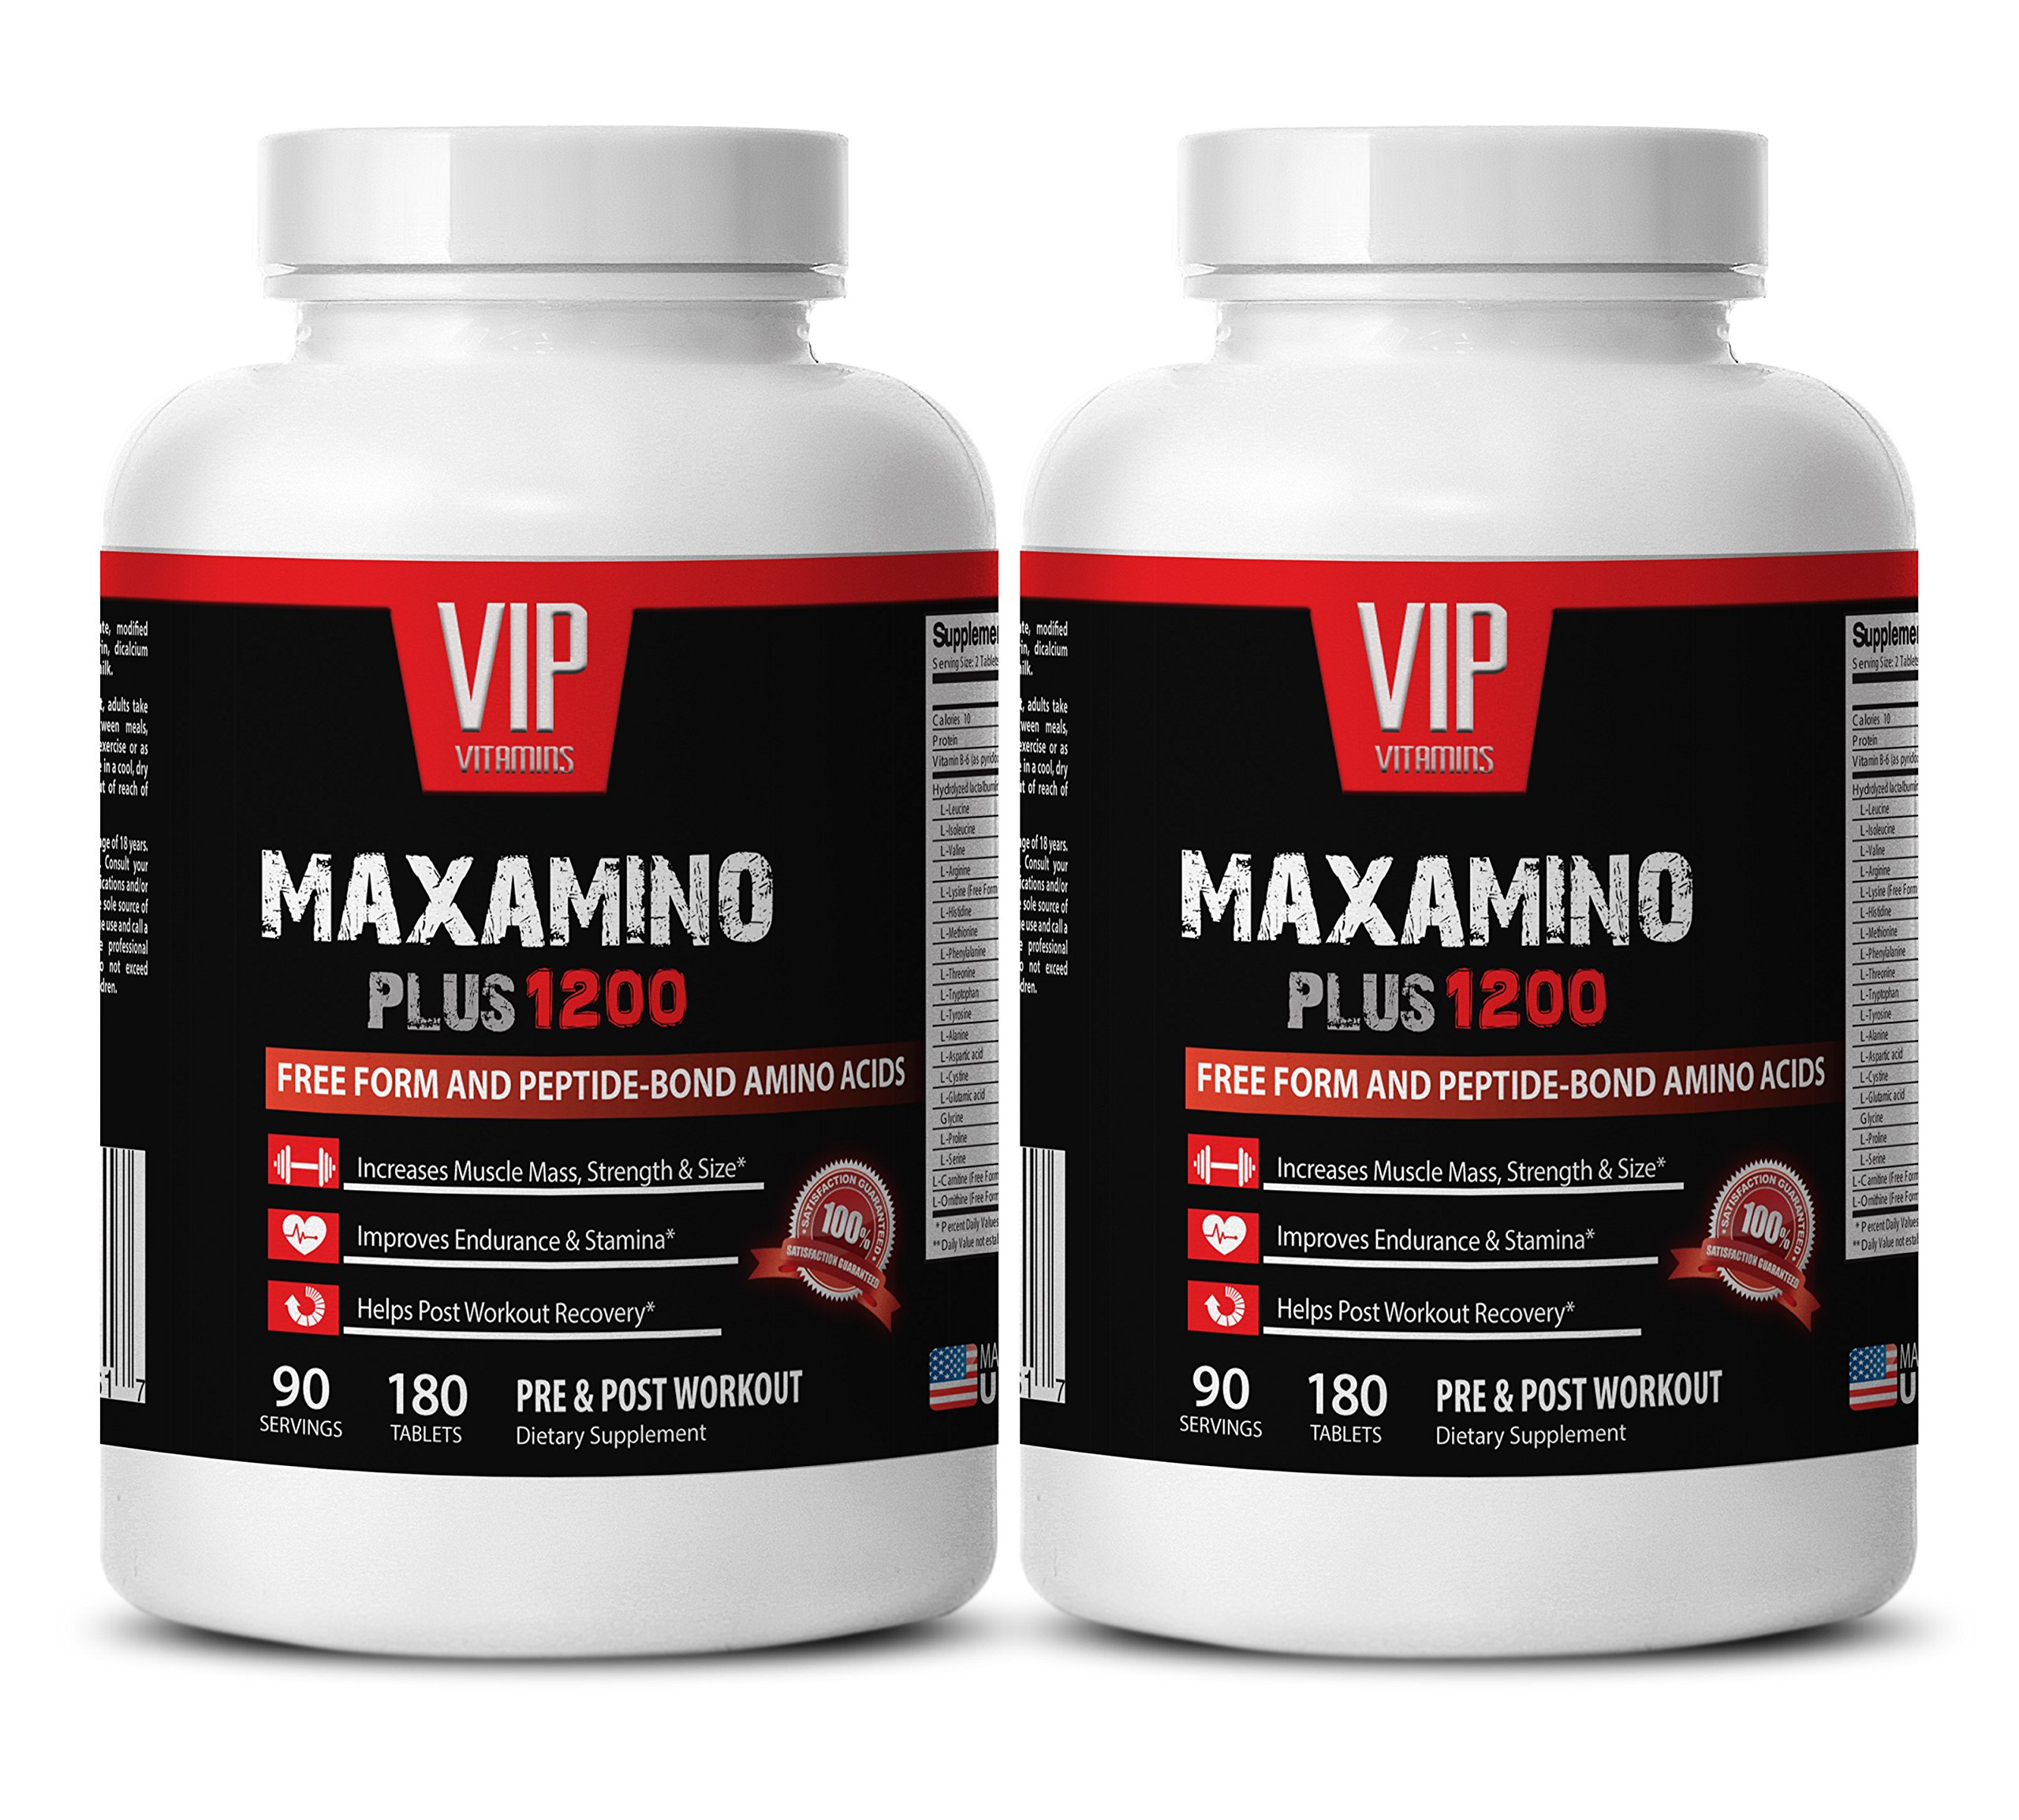 Amino acids for men - MAXAMINO PLUS 1200 - Muscle building supplements - 2 Bottles 360 Tablets